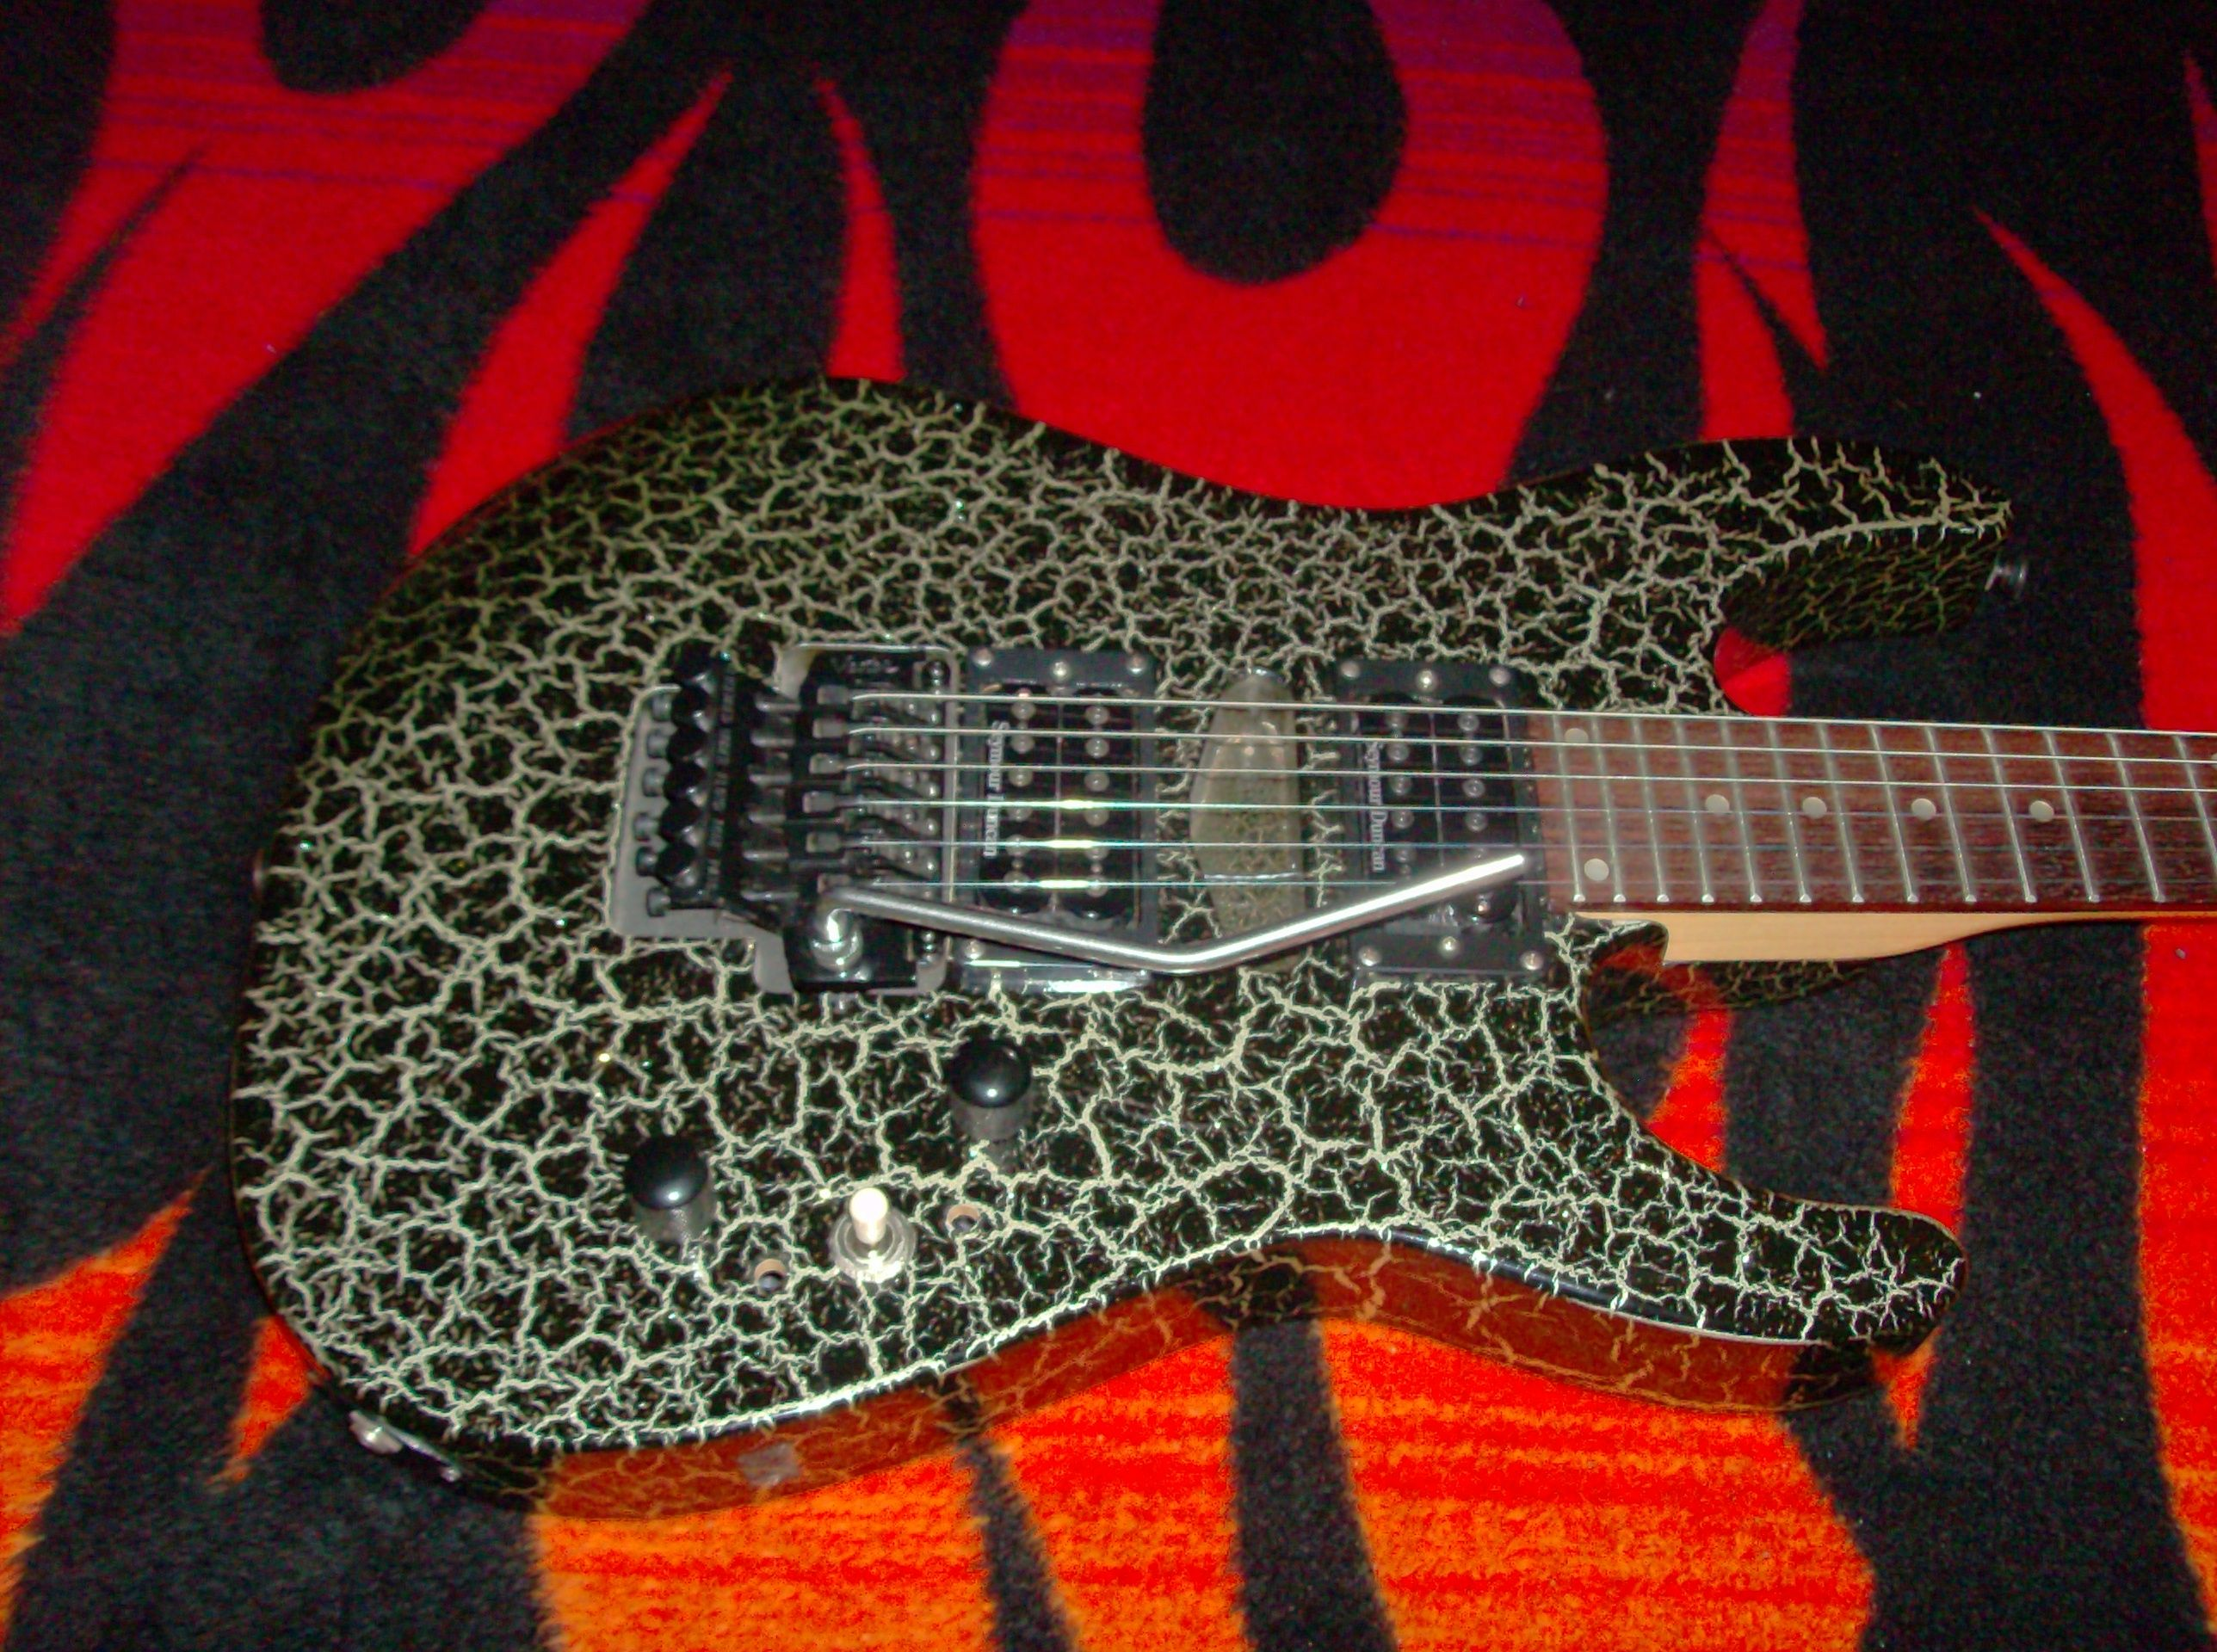 Crackle Sft FinishGuitar 70a Black Vester WE2YDIH9